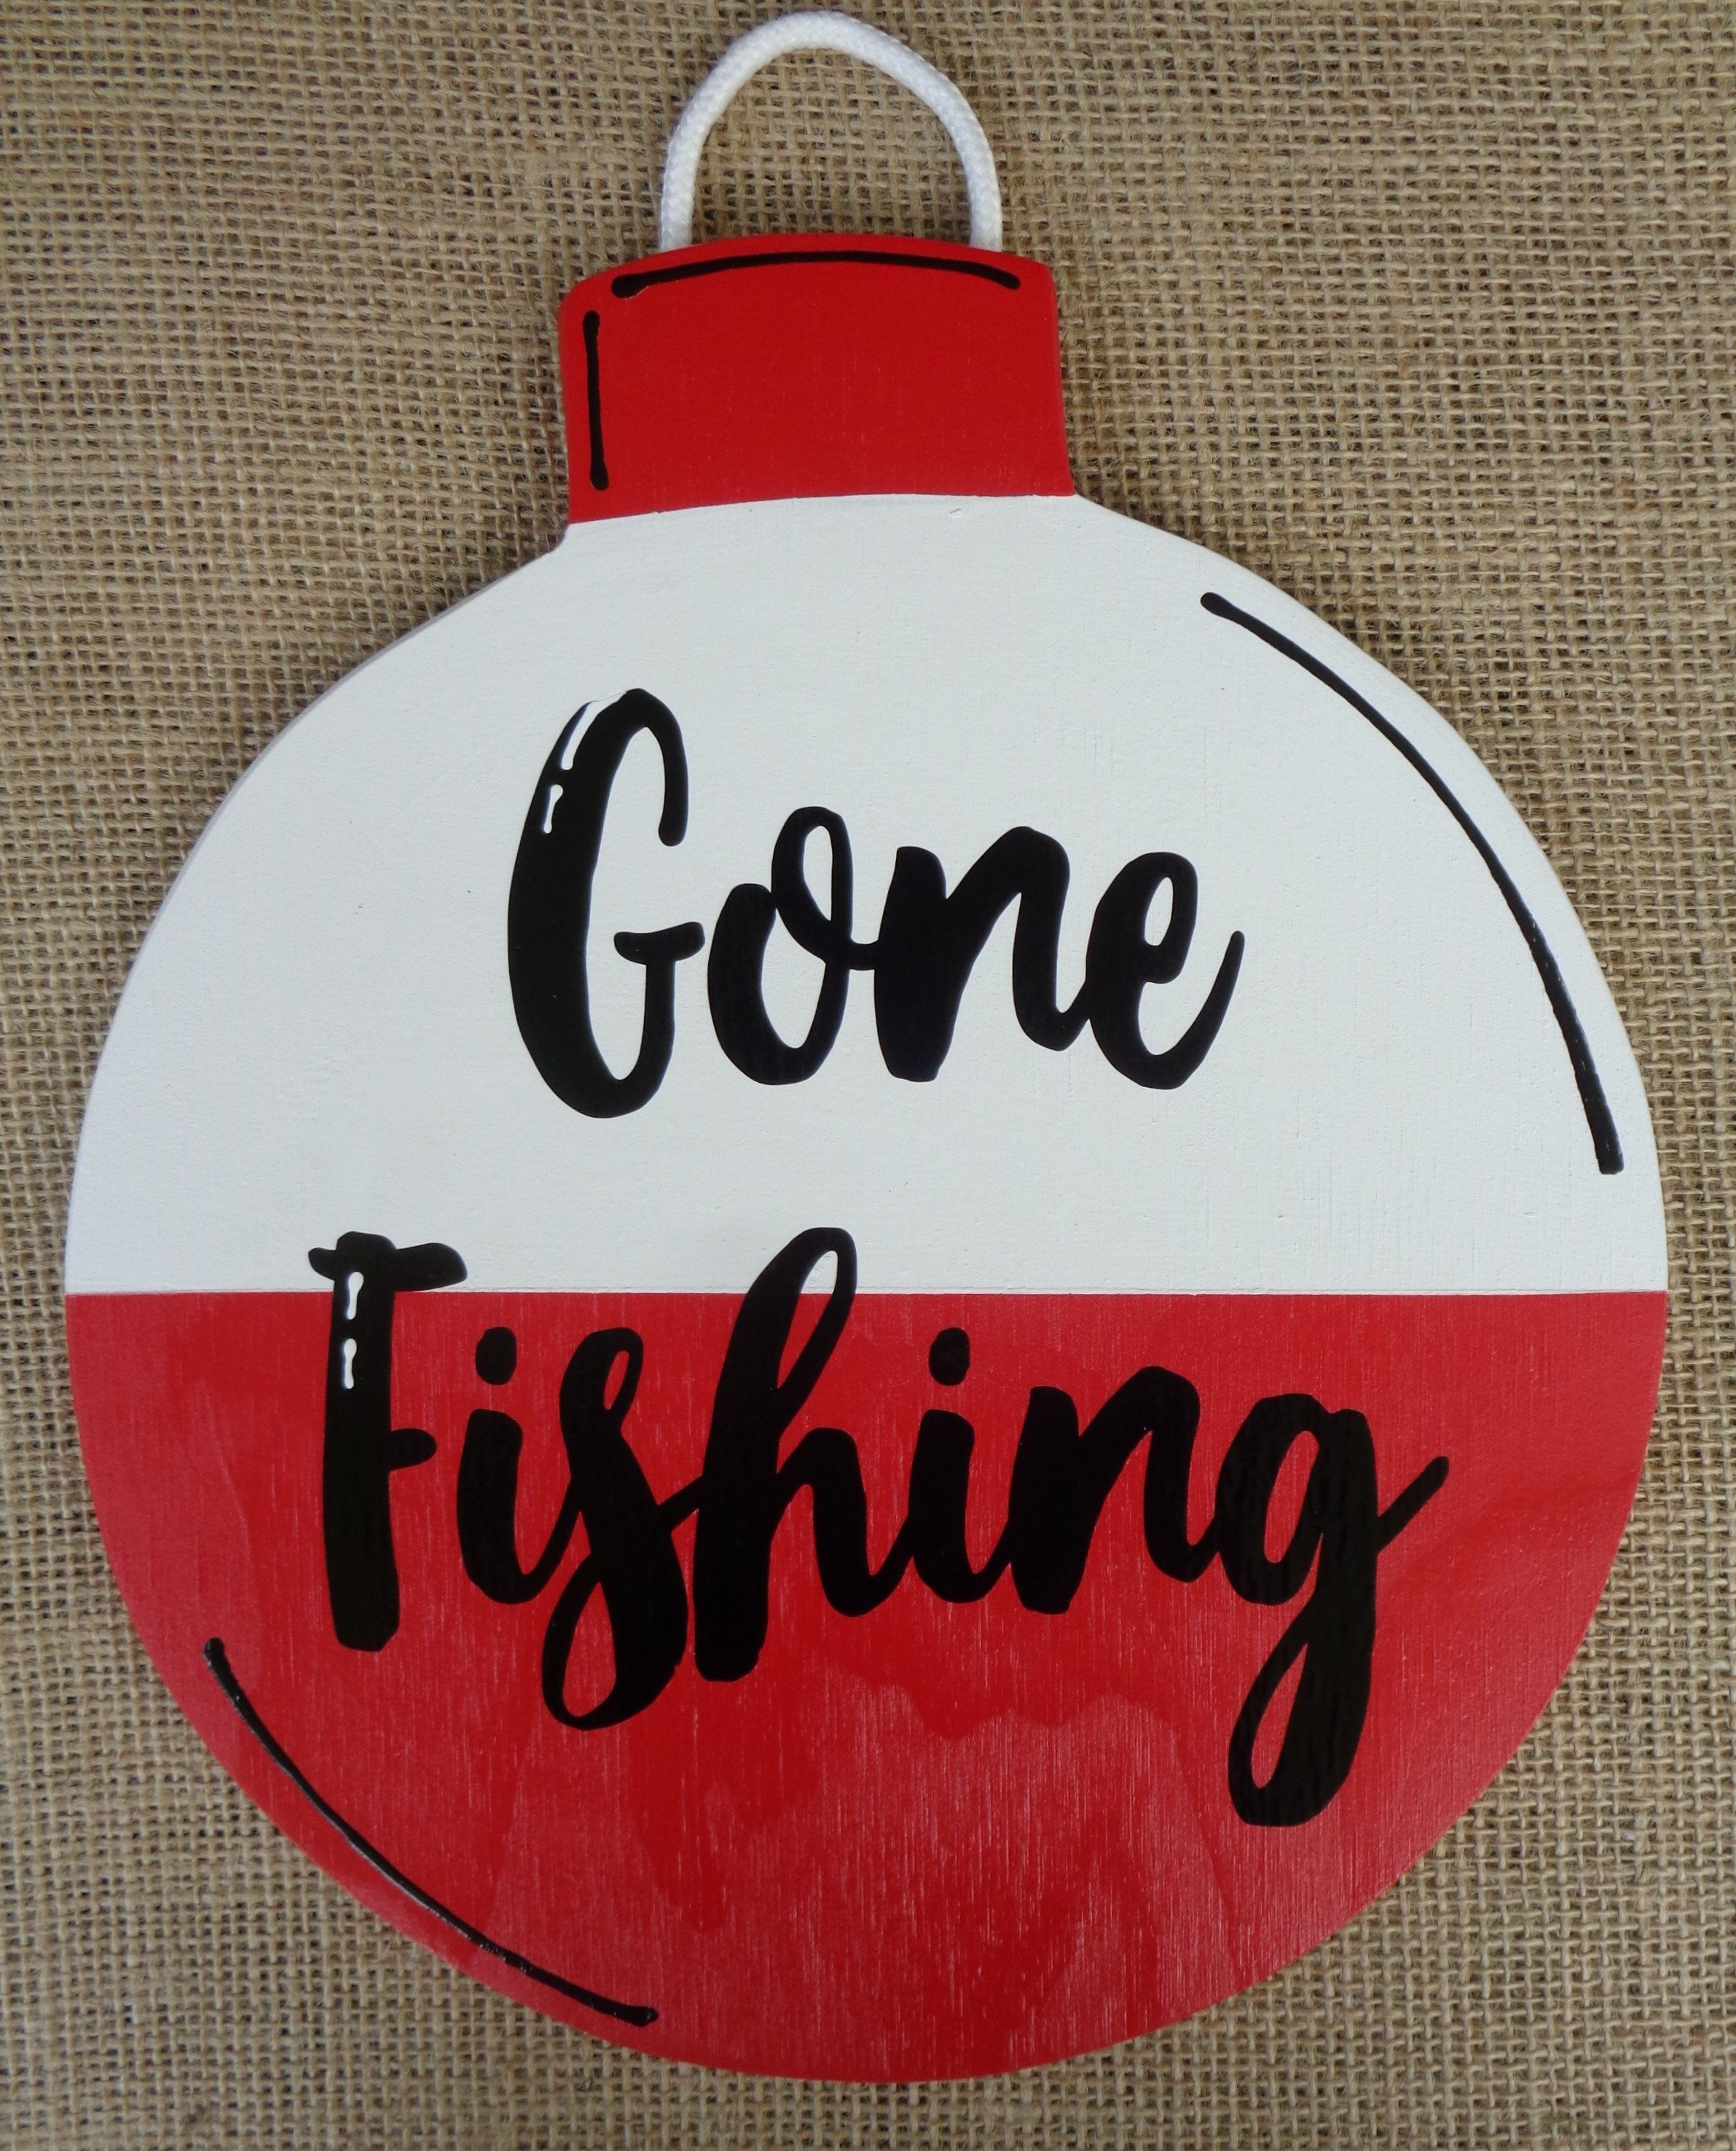 Gone Fishing Bobber Sign Handcrafted Plaque Wood Wooden Wall Etsy In 2020 Hand Painted Decor Gone Fishing Sign Fishing Bobber